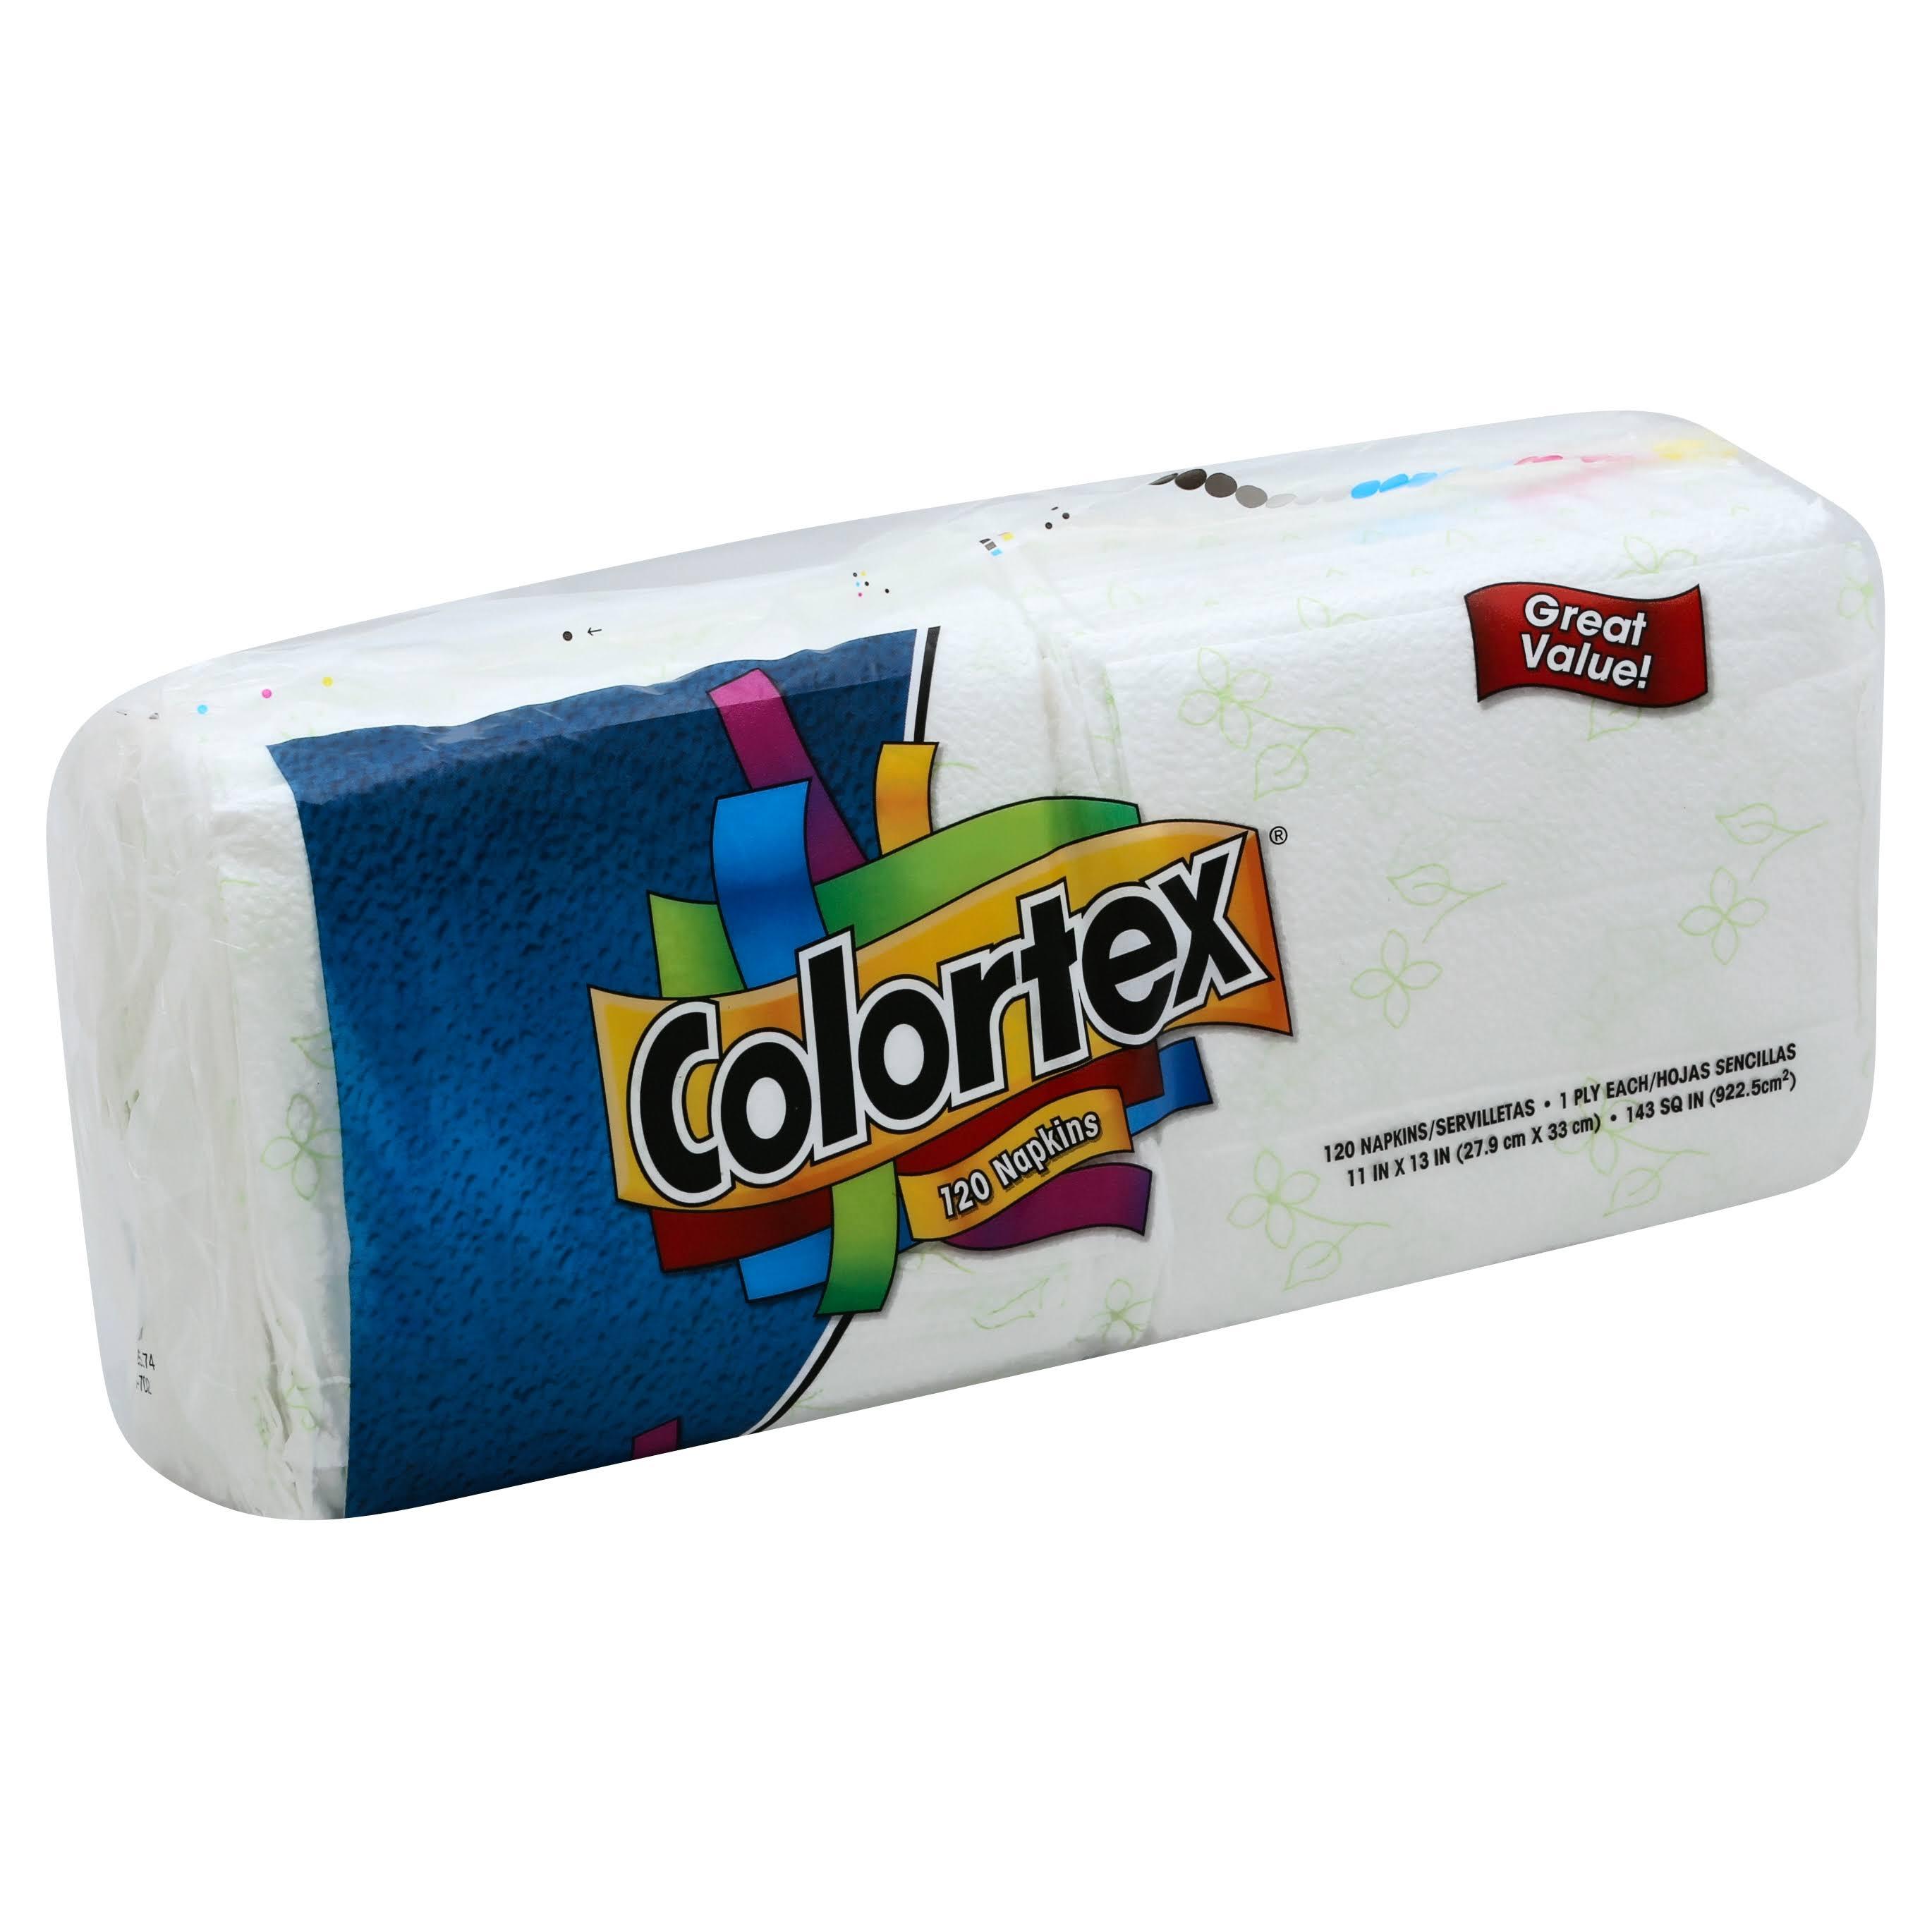 Colortex Paper Napkins - 120ct